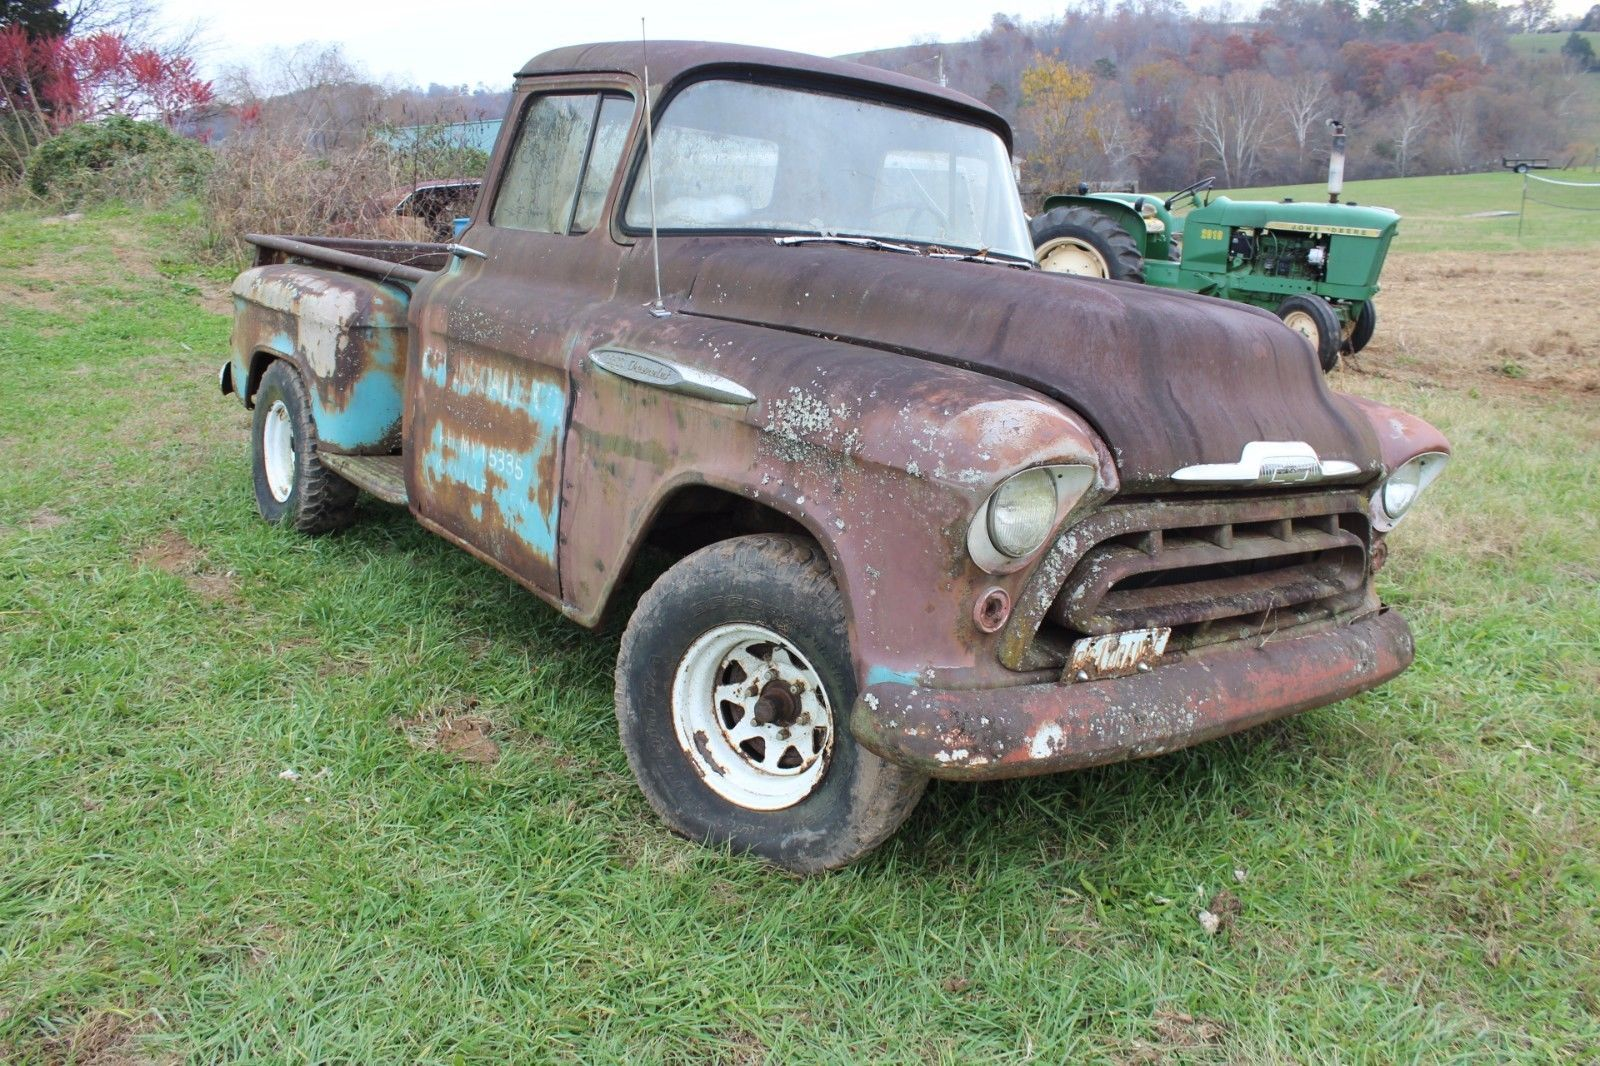 1957 chevrolet other pickups 3200 pinterest 1957 chevrolet rh pinterest com 1957 chevy truck factory assembly manual 1957 chevy truck service manual